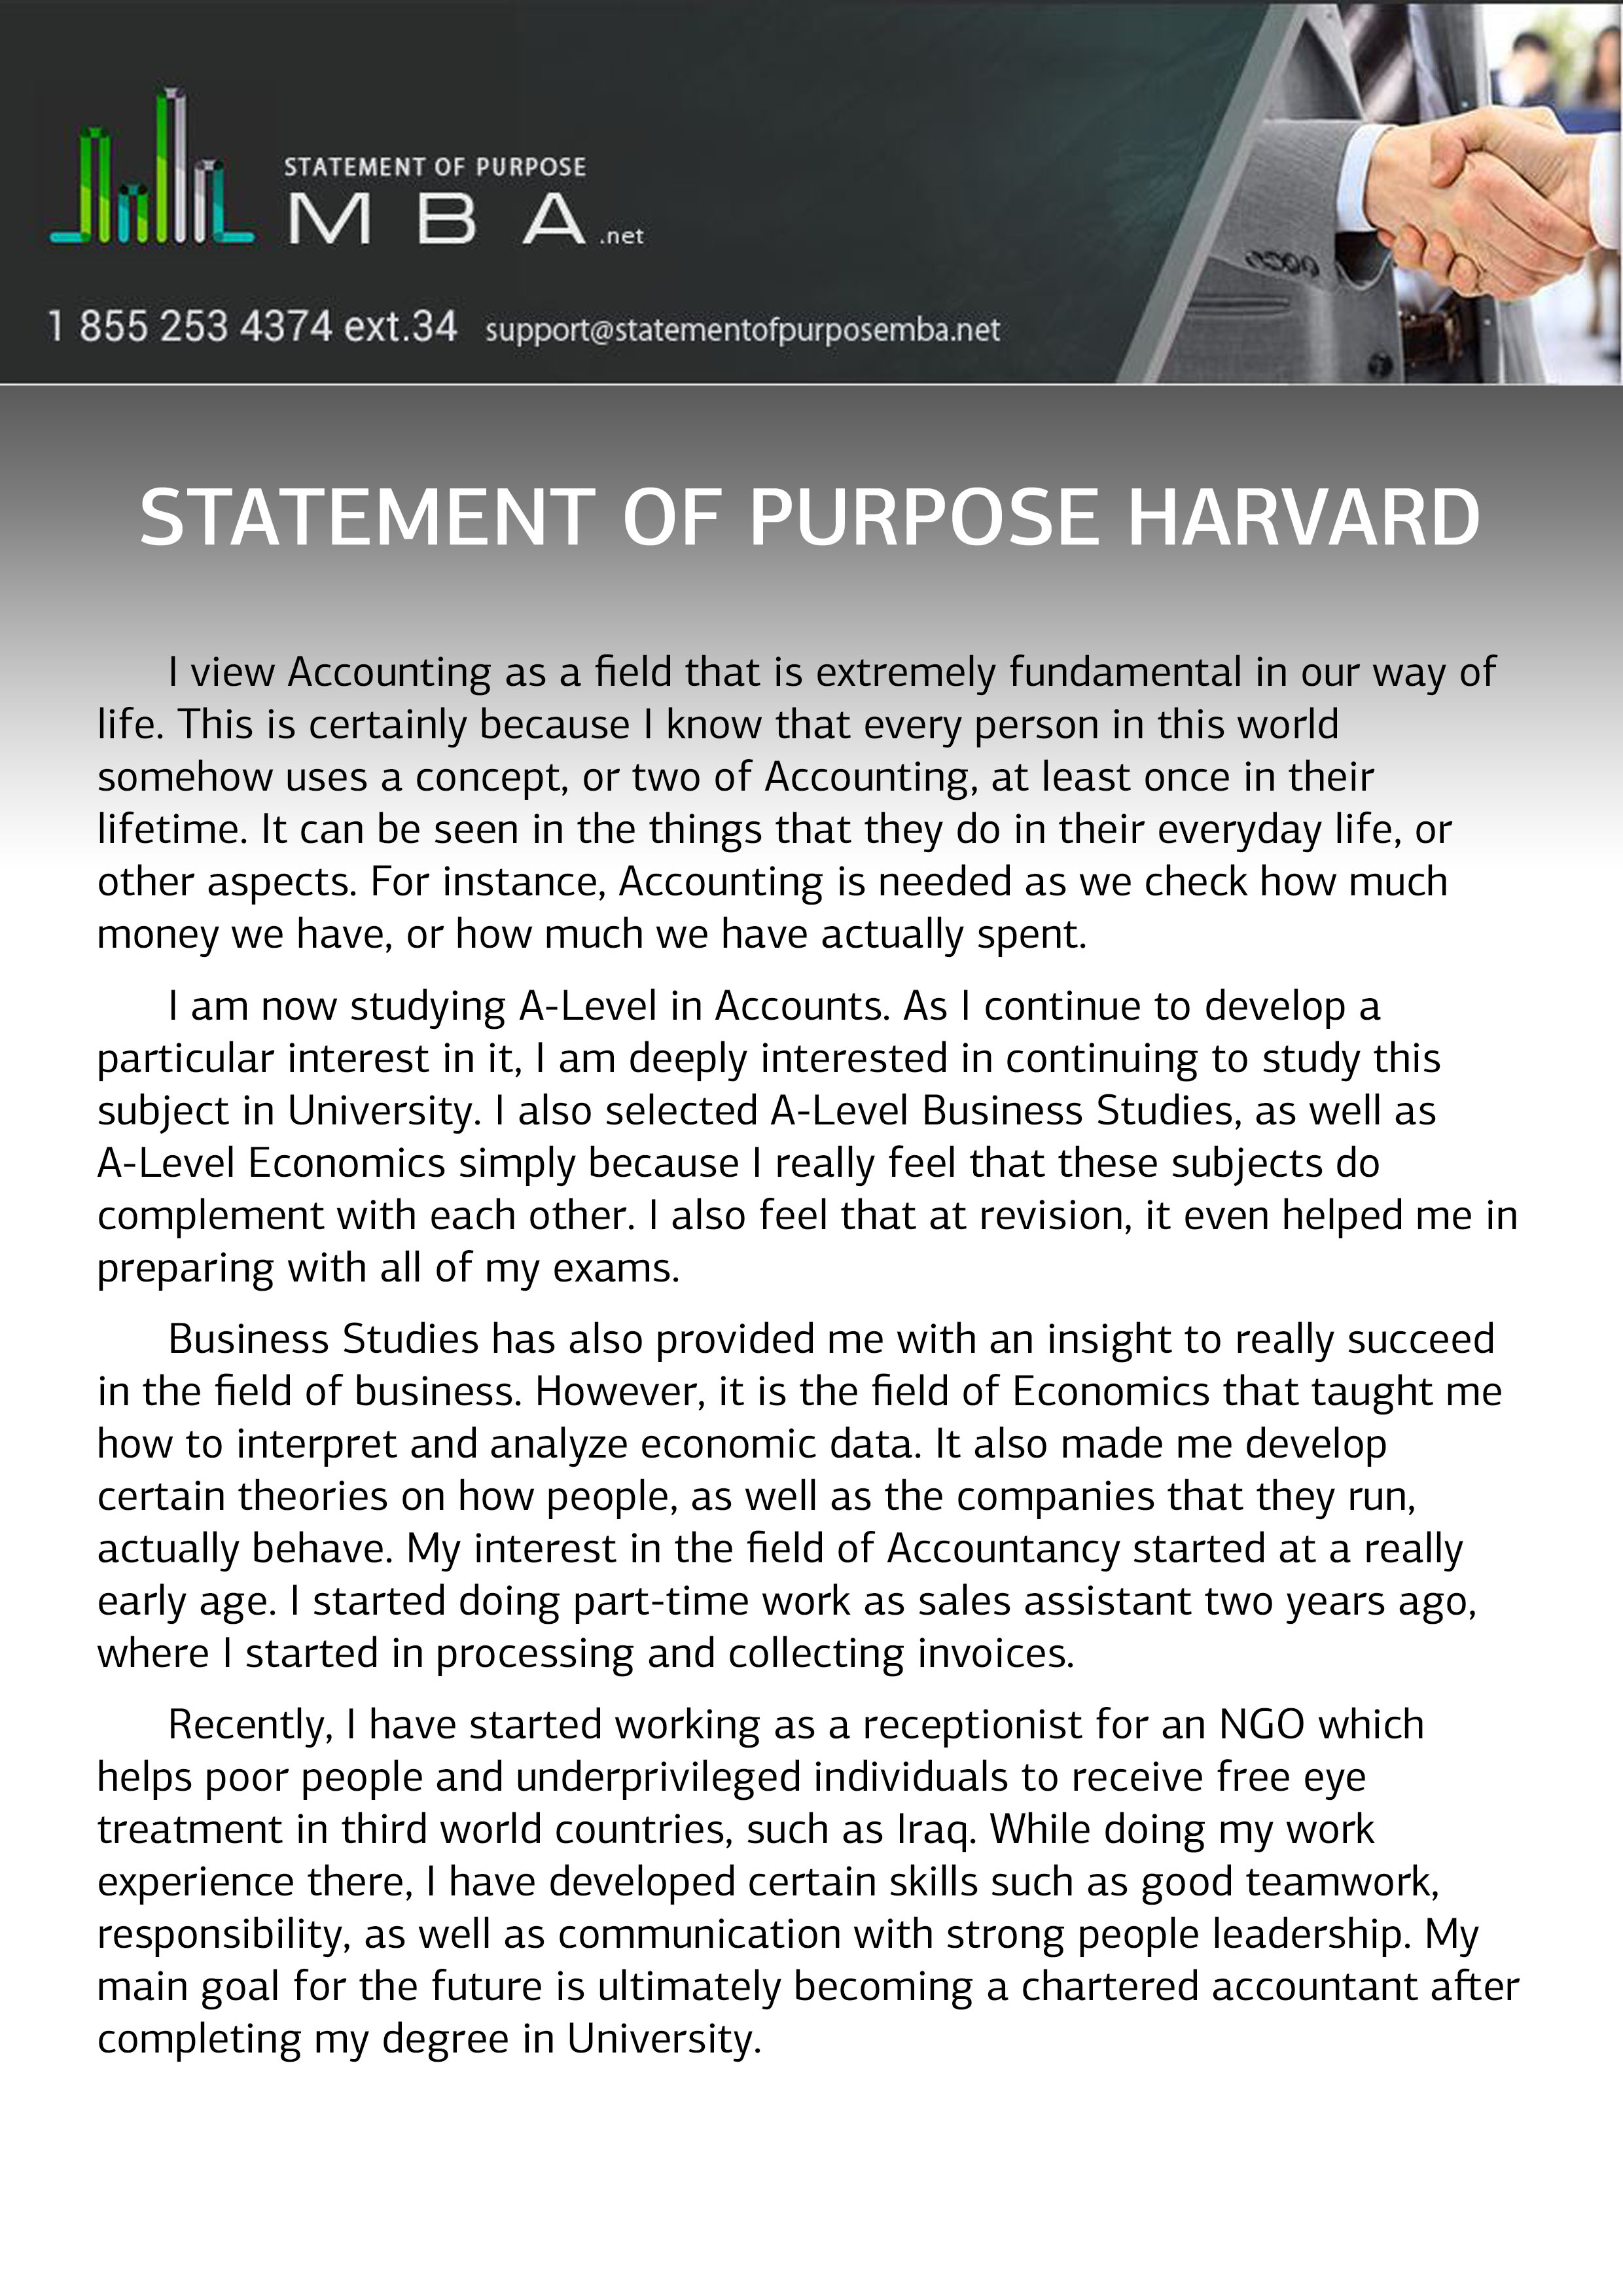 002 Stanford Mba Essay Sample Harvard Business School Tips Statement Of Pu Application Essays Length Questions Successfuls Formidable Word Limit Question 2018 Full